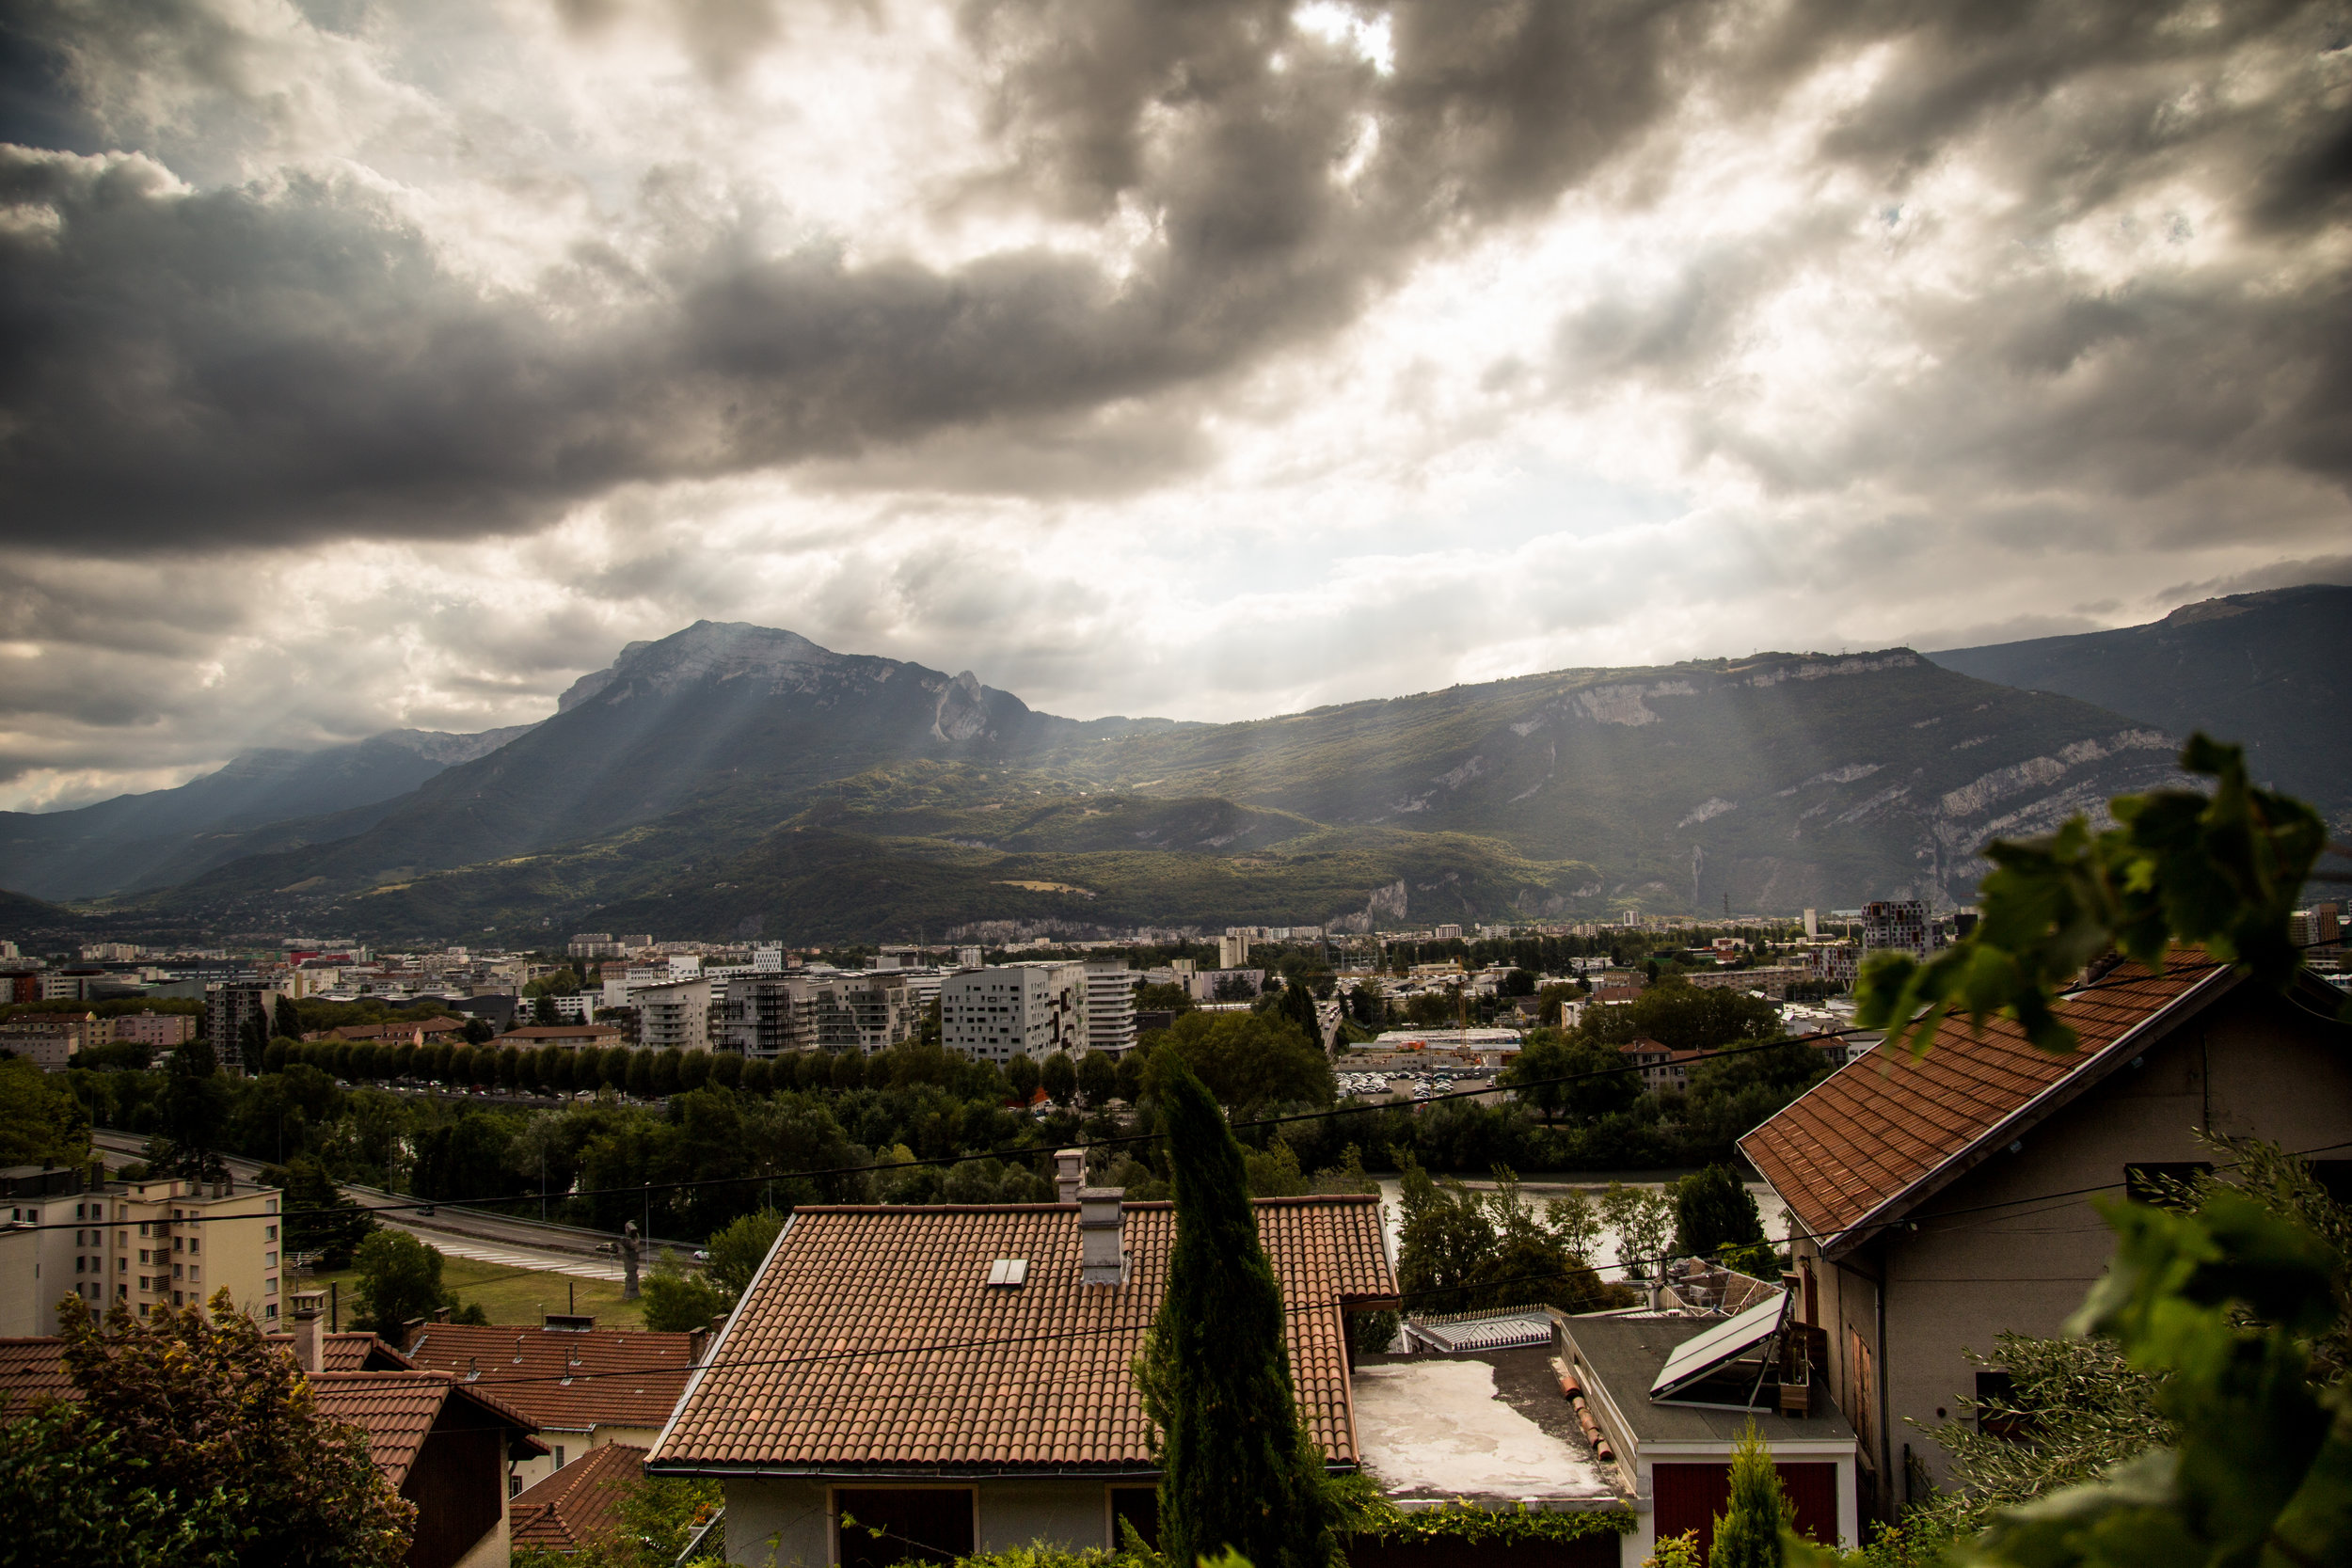 The view from our apartment overlooking Grenoble.